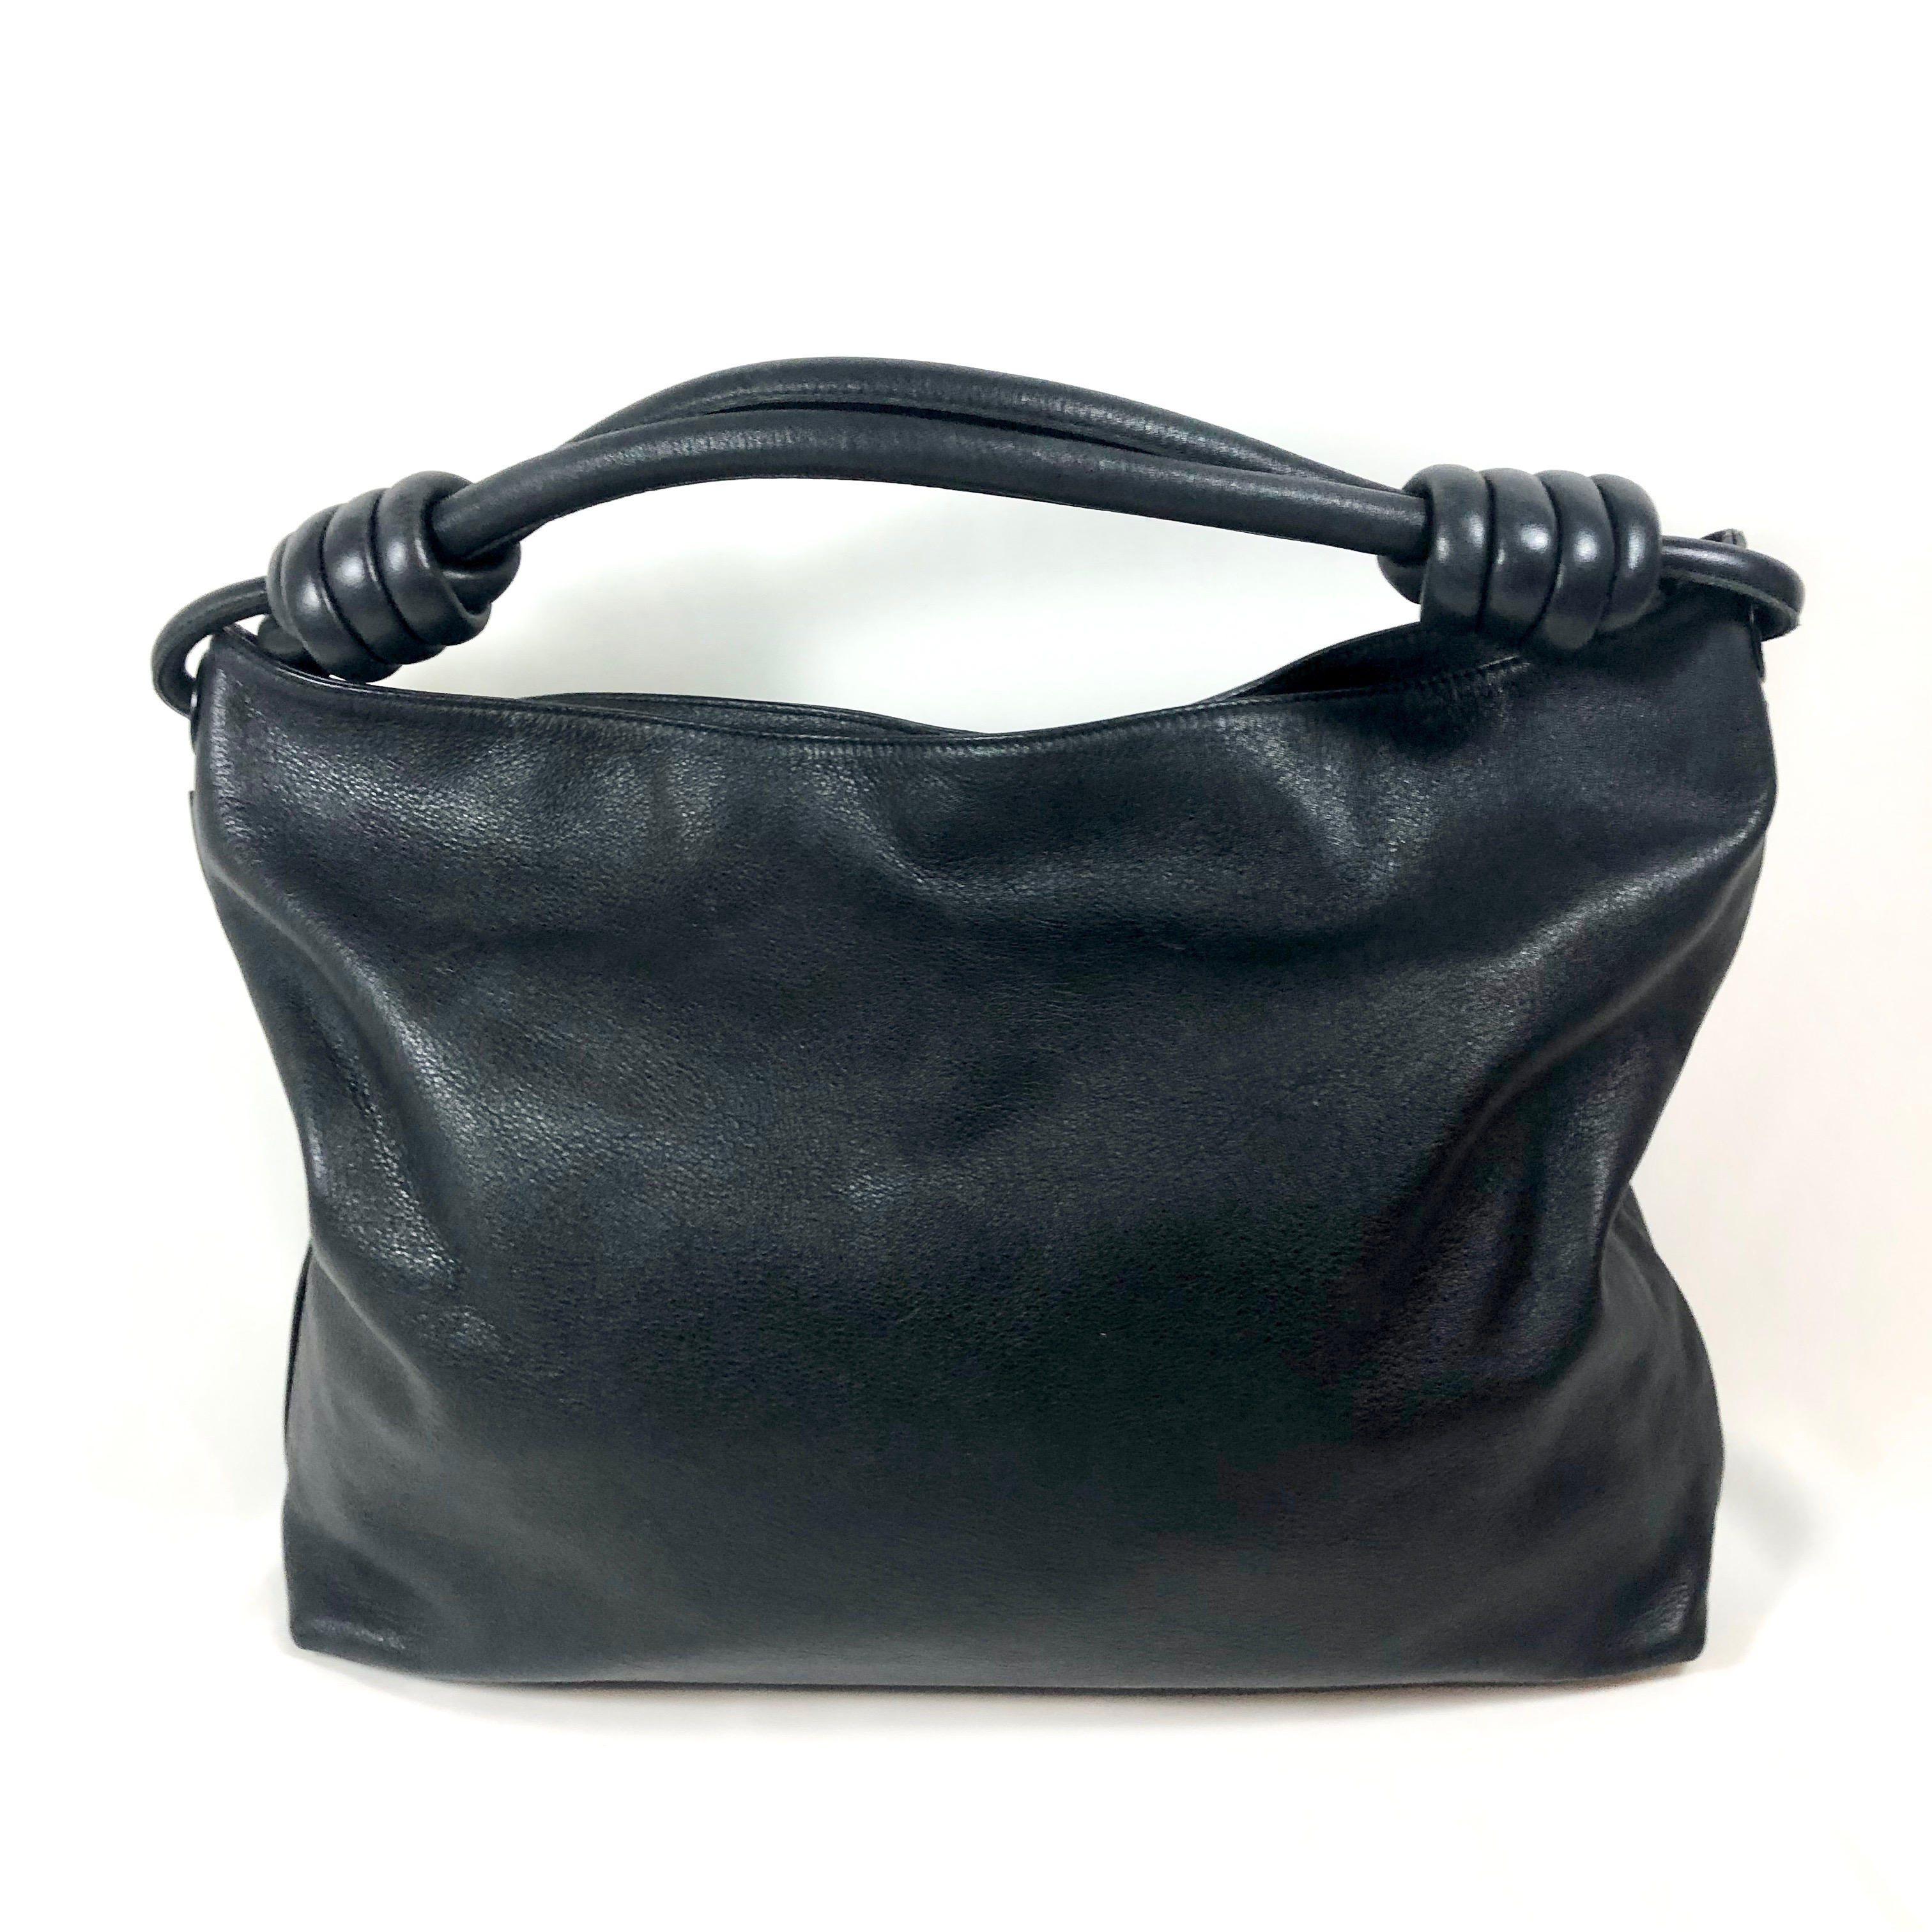 f663c38234f1 LOEWE HOBO KNOT LARGE BAG IN BLACK CALF LEATHER - Still in fashion